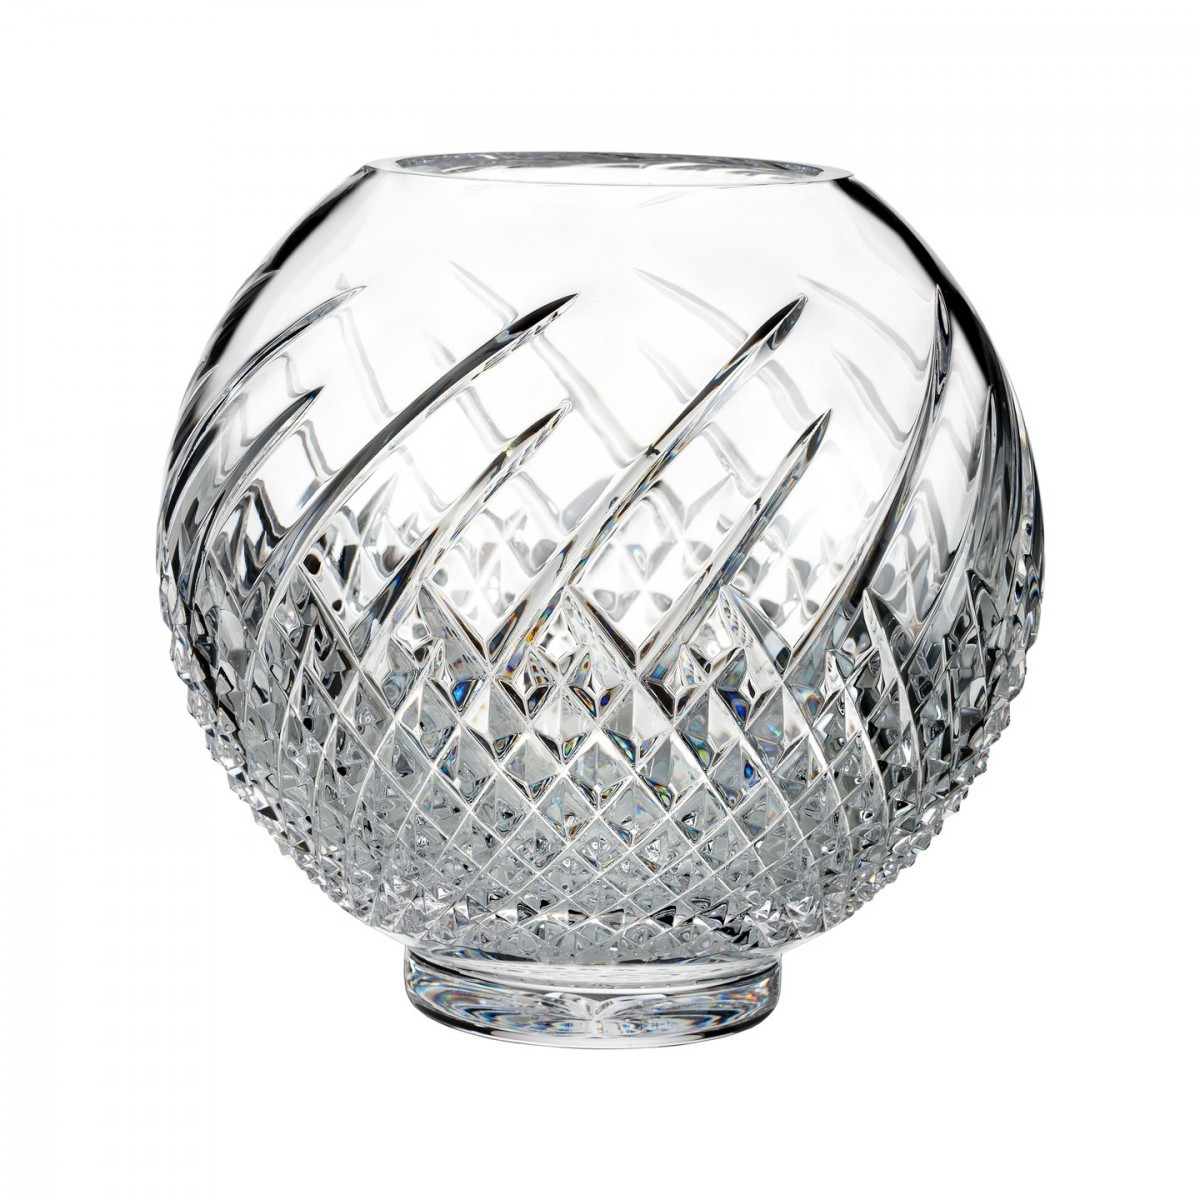 Waterford Marquis Markham Vase Of Wild atlantic Way Rose Bowl House Of Waterford Crystal Us with Wild atlantic Way Rose Bowl